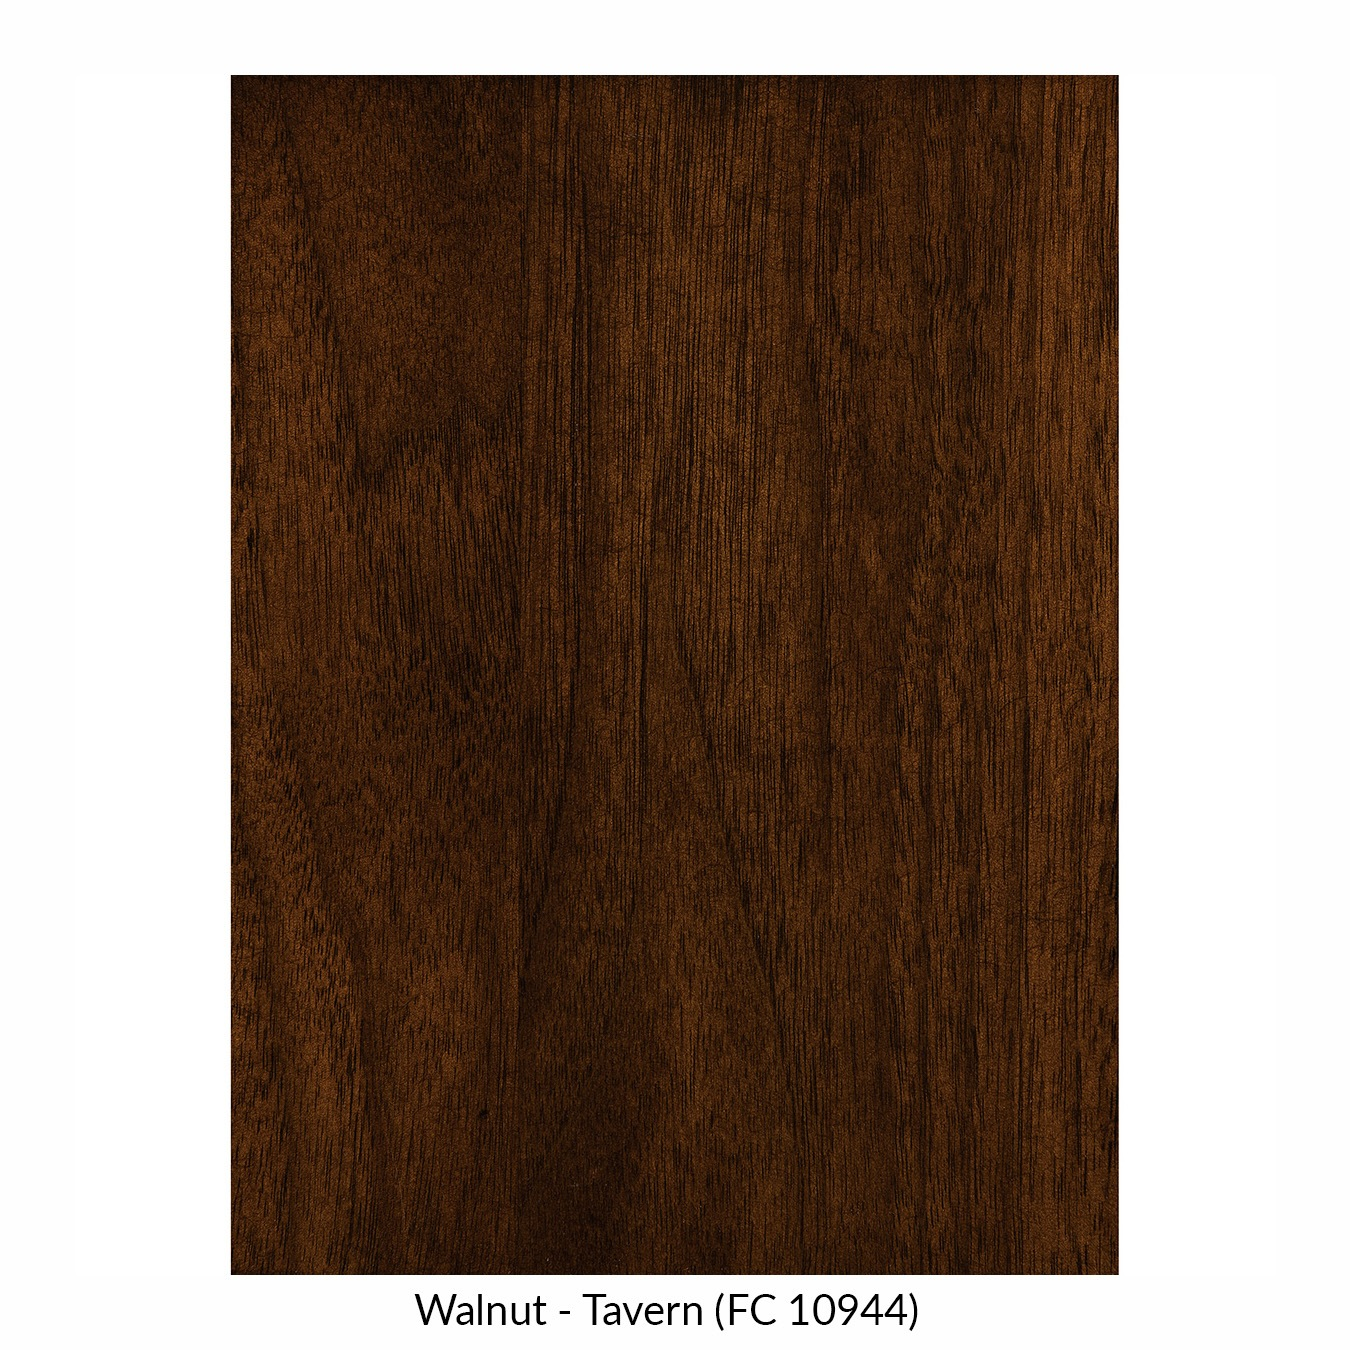 spectrum-walnut-tavern-fc-10944.jpg